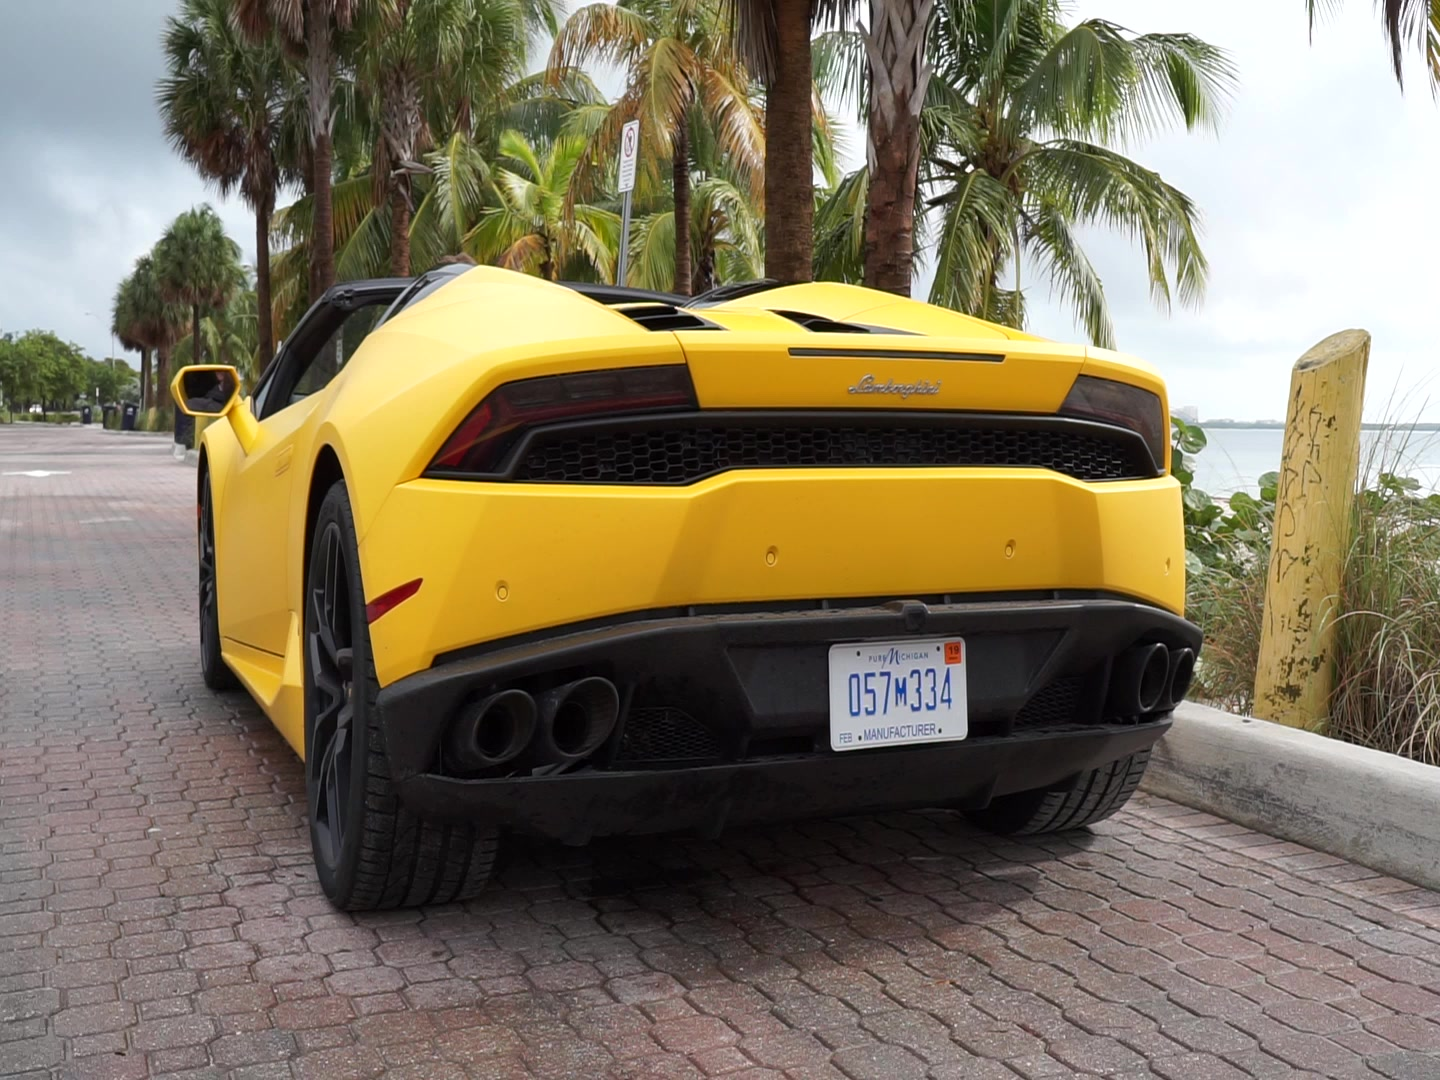 Lamborghini Huracan LP 610-4 Exhaust Note